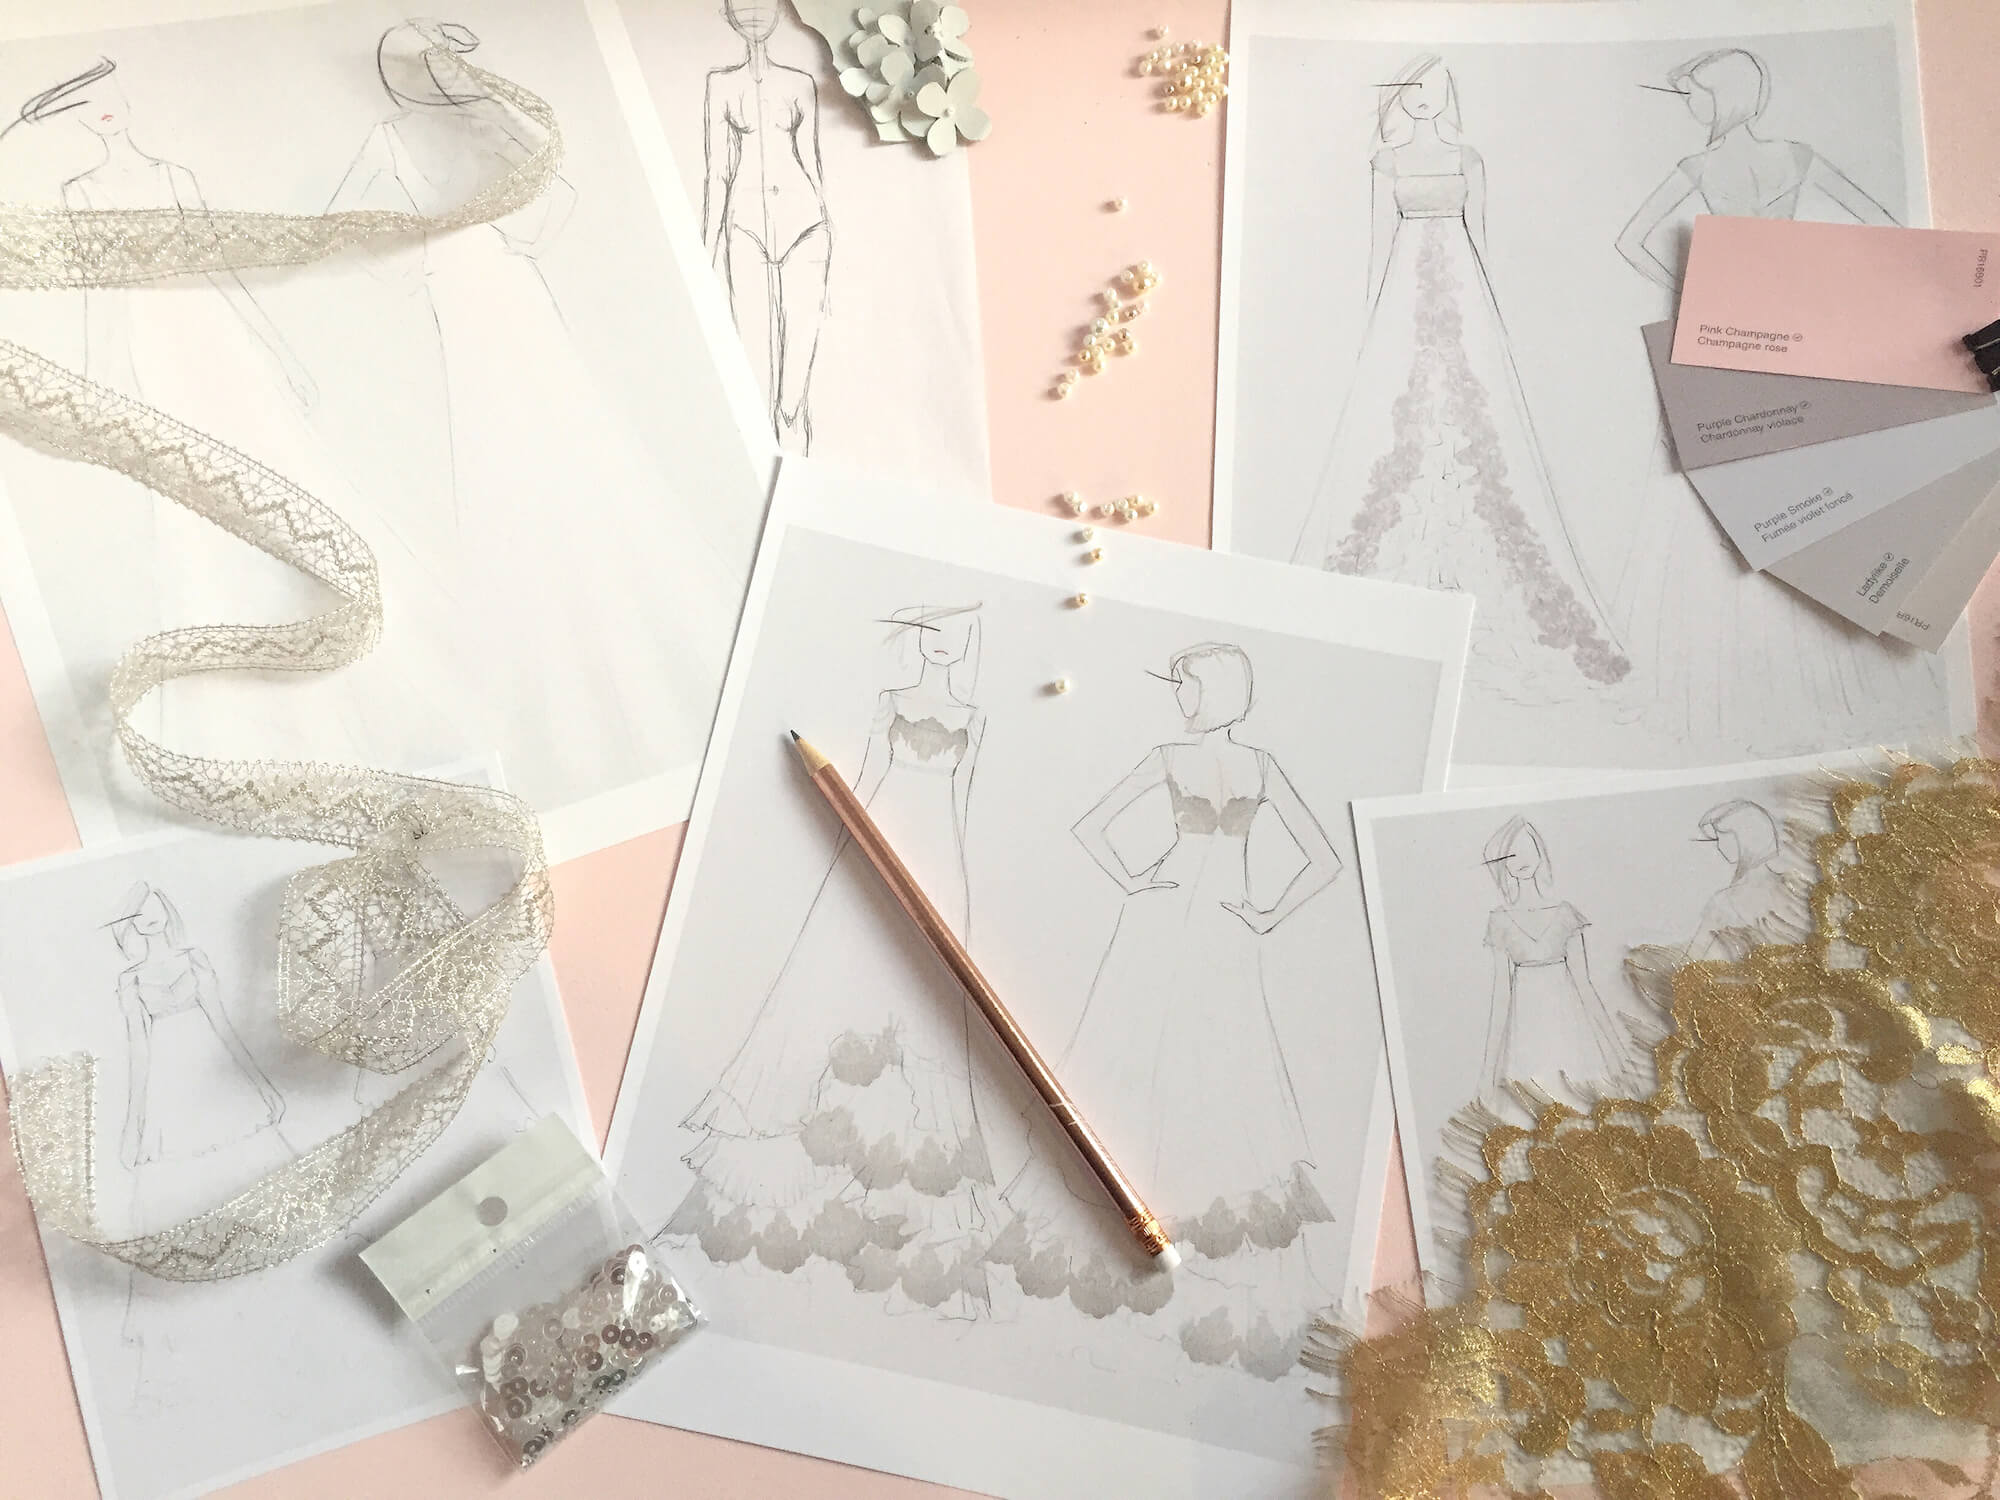 Design package image - sketches, fabrics and inspo images.